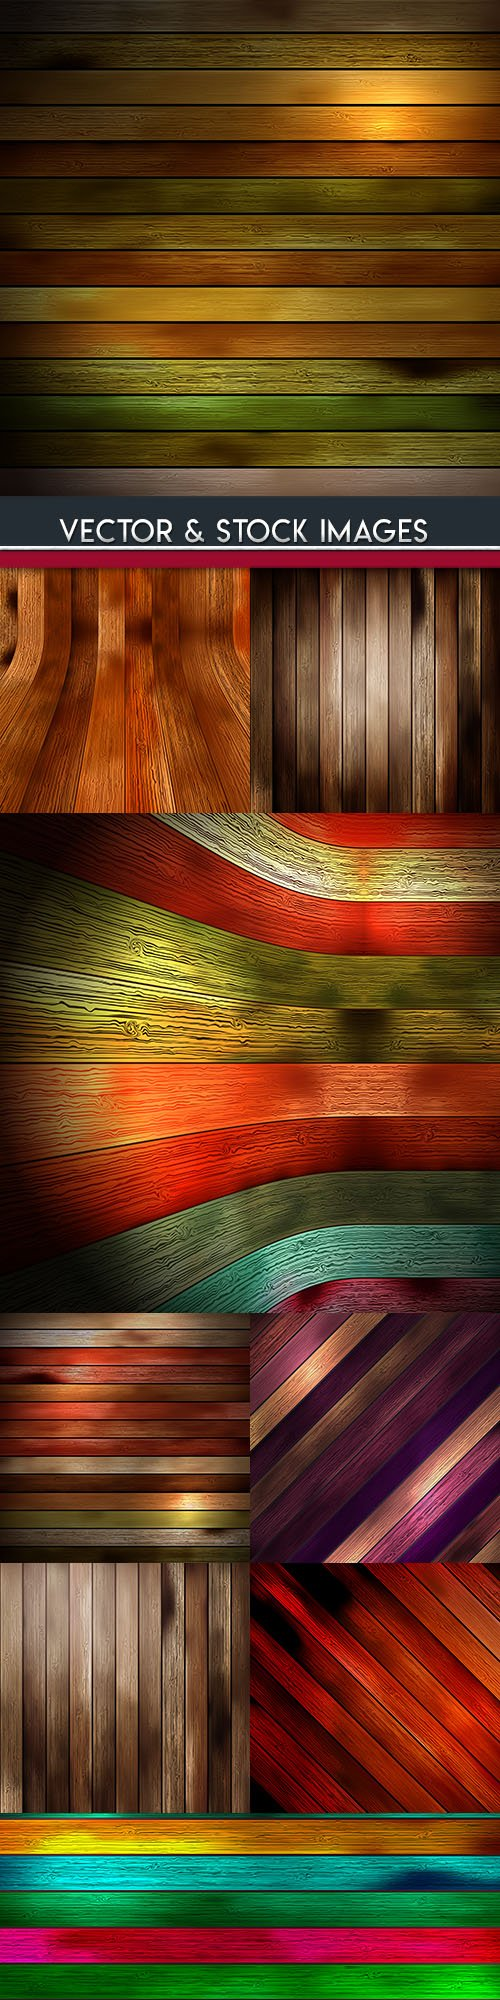 Wooden boards design color backgrounds